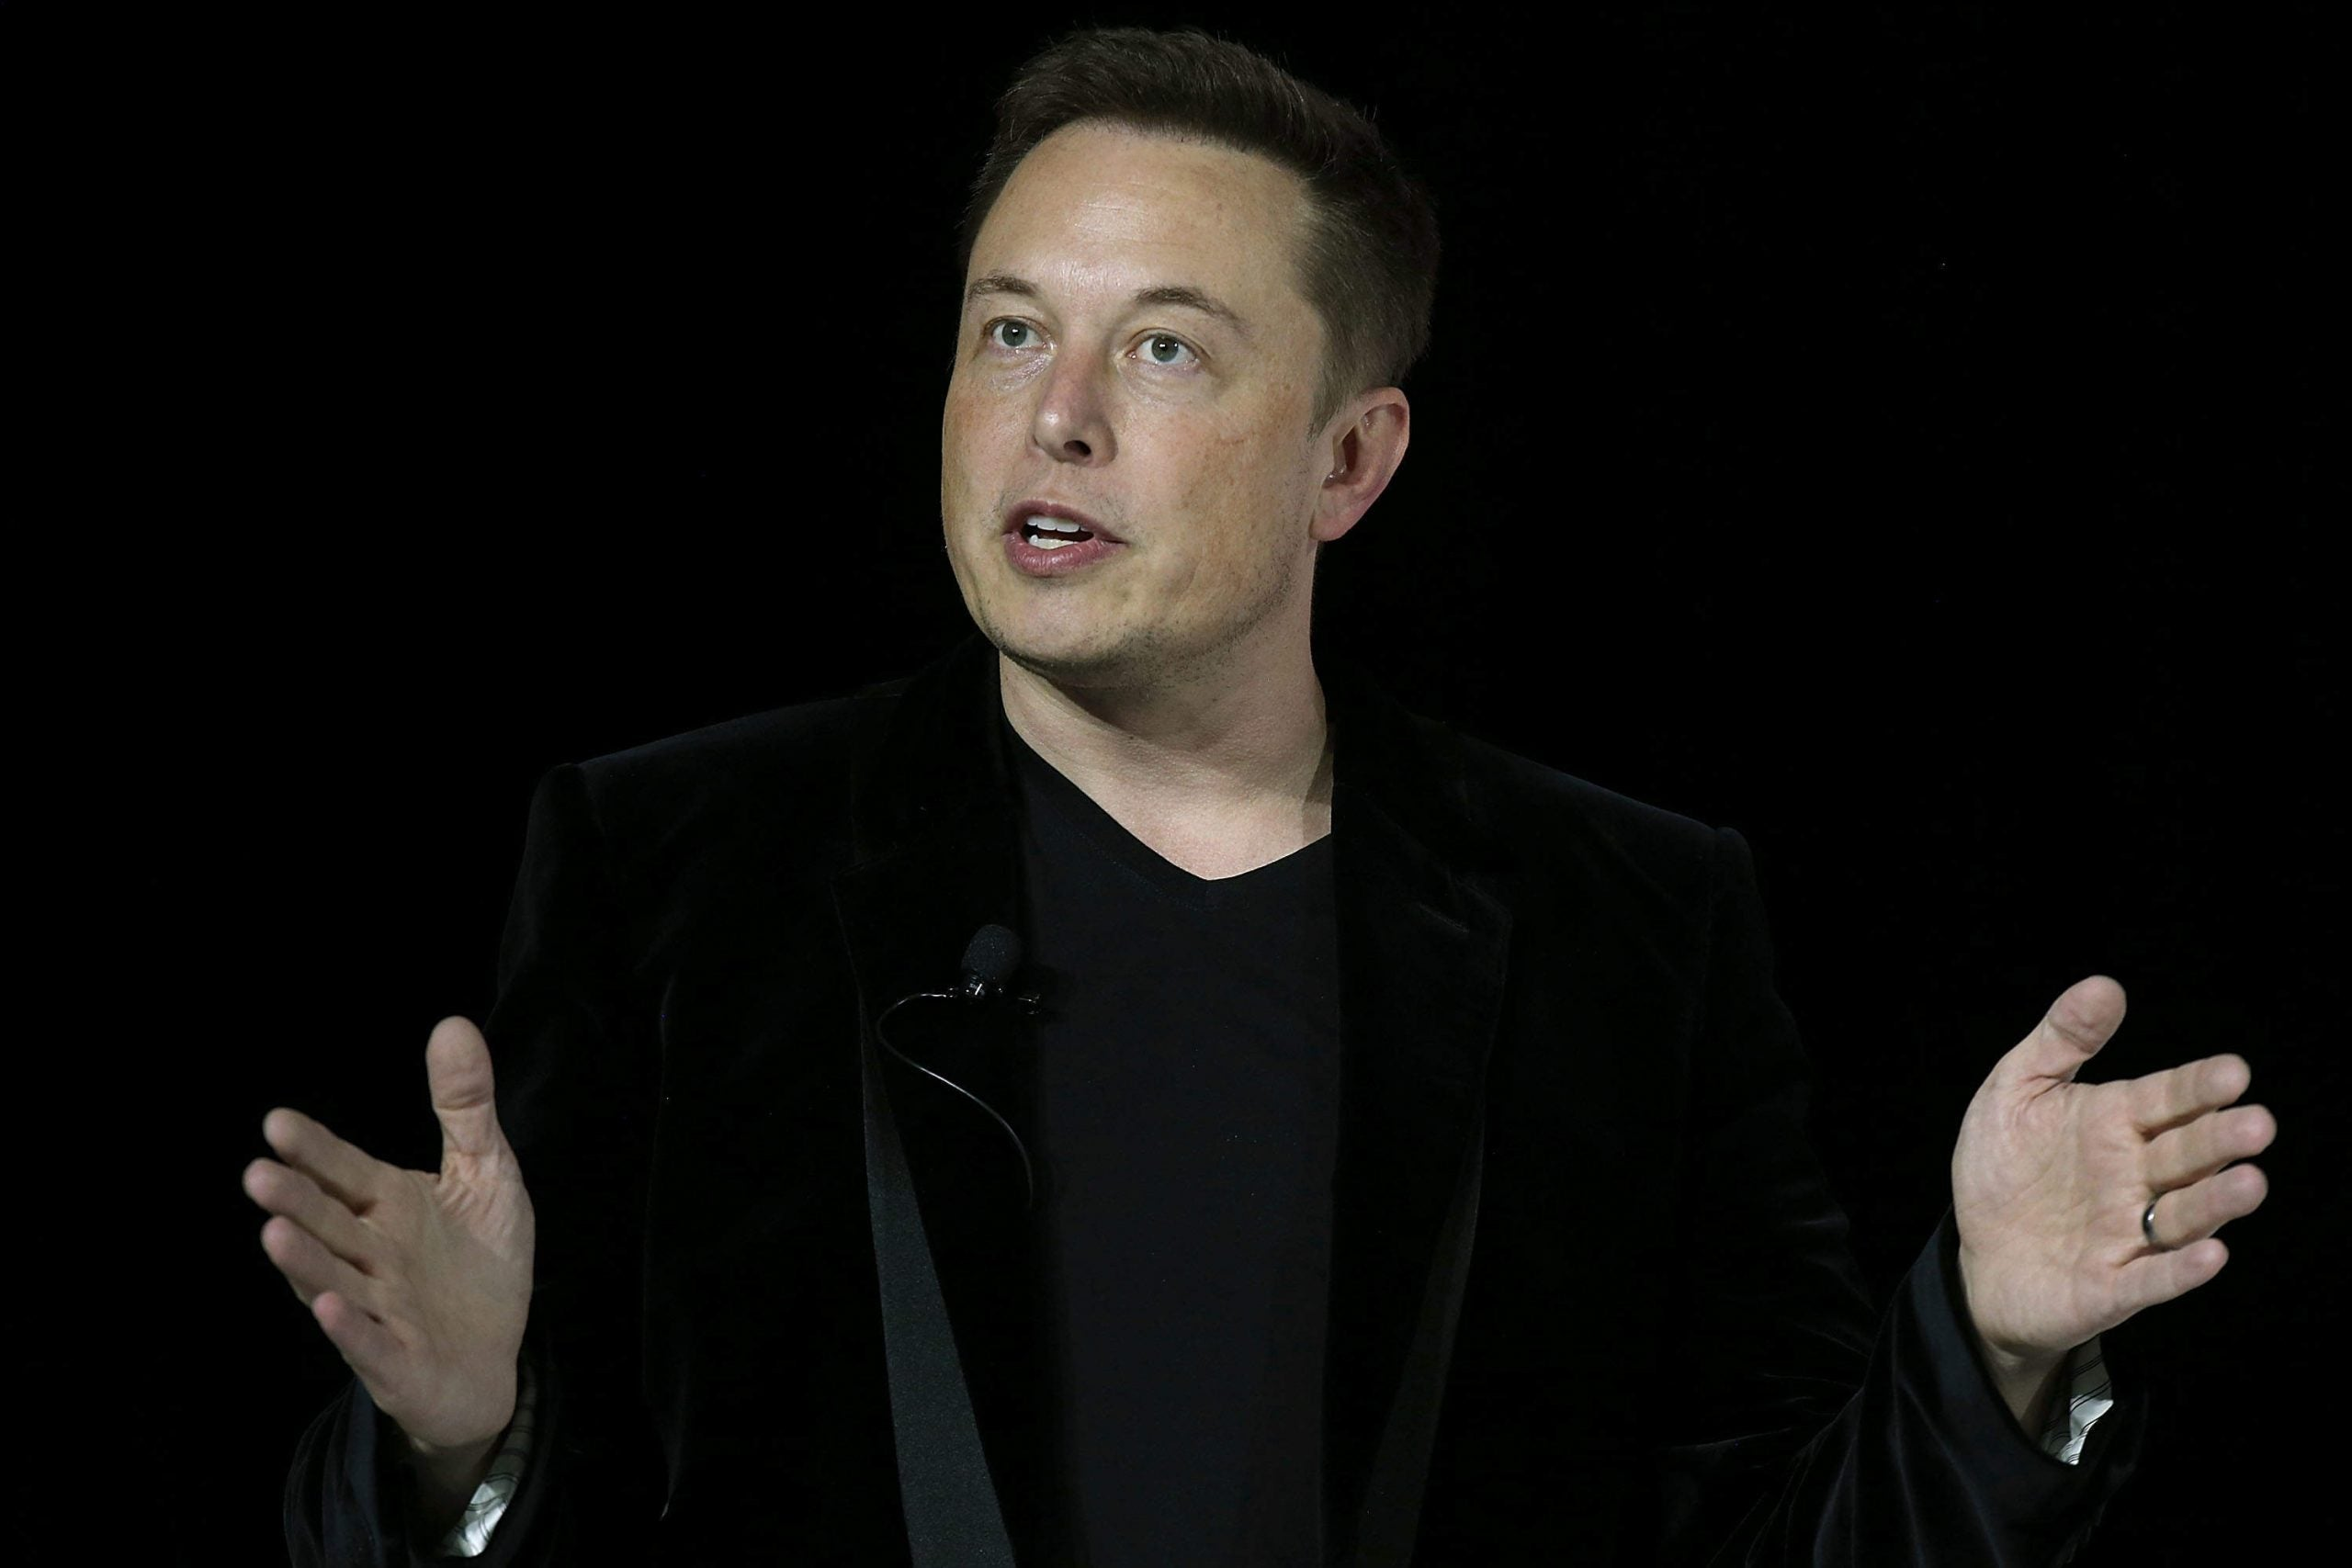 Making life multi-planetary: Elon Musk outlines his vision to take humans to Mars